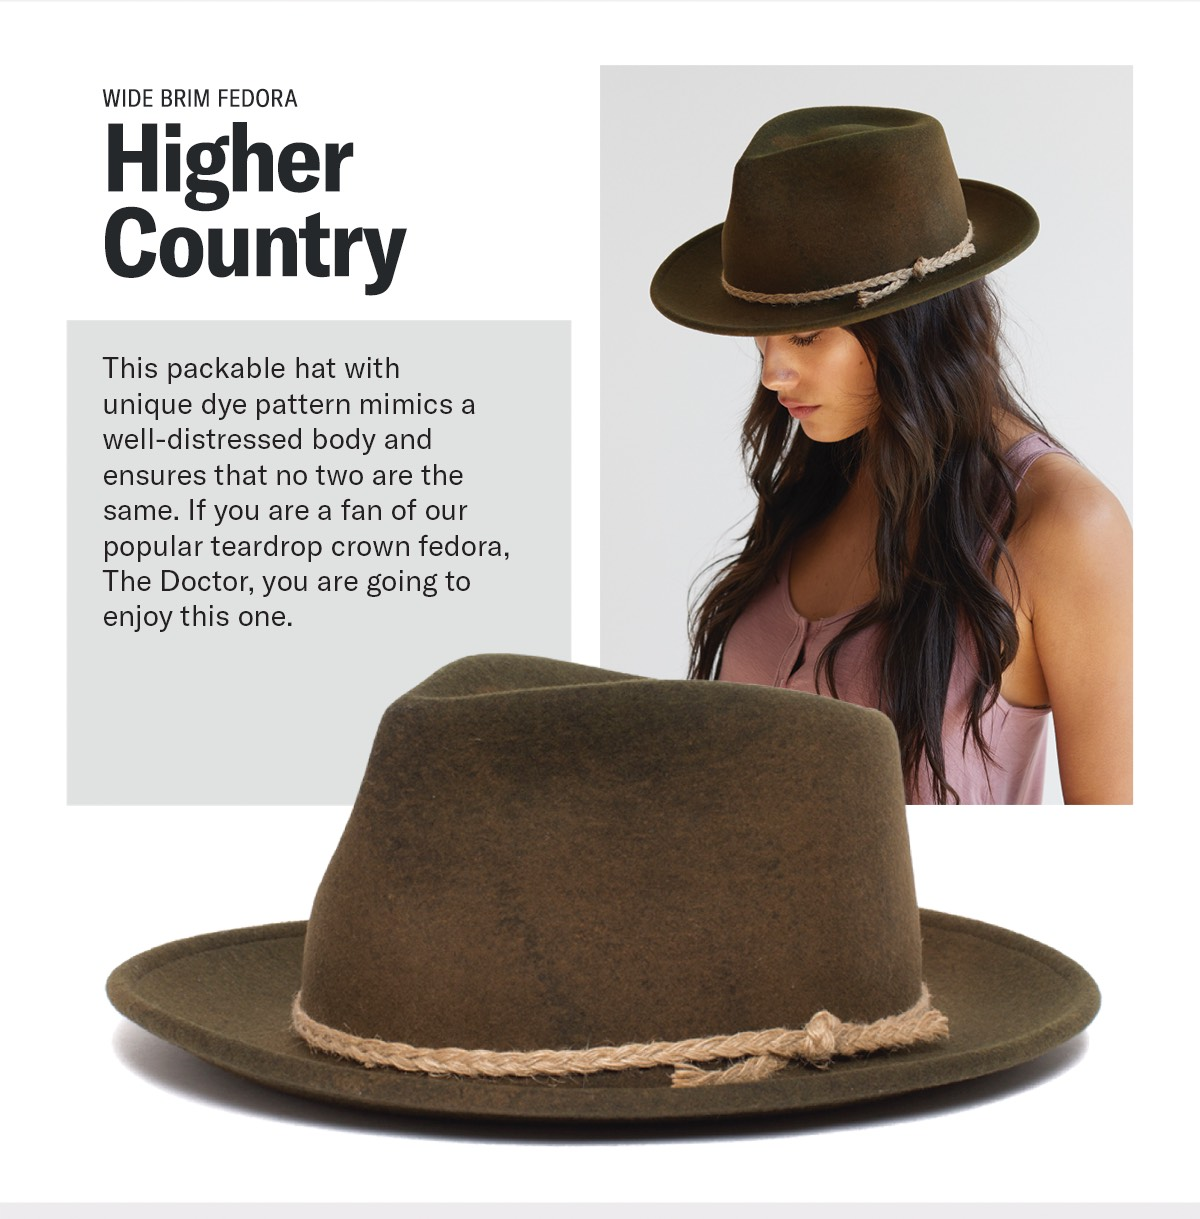 Wide Brim Fedora | HIGHER COUNTRY | This packable hat with unique dye pattern mimics a well-dressed body and ensures that no two are the same. If you are a fan of our popular teardrop crown fedora, The Doctor, you are going to enjoy this one.